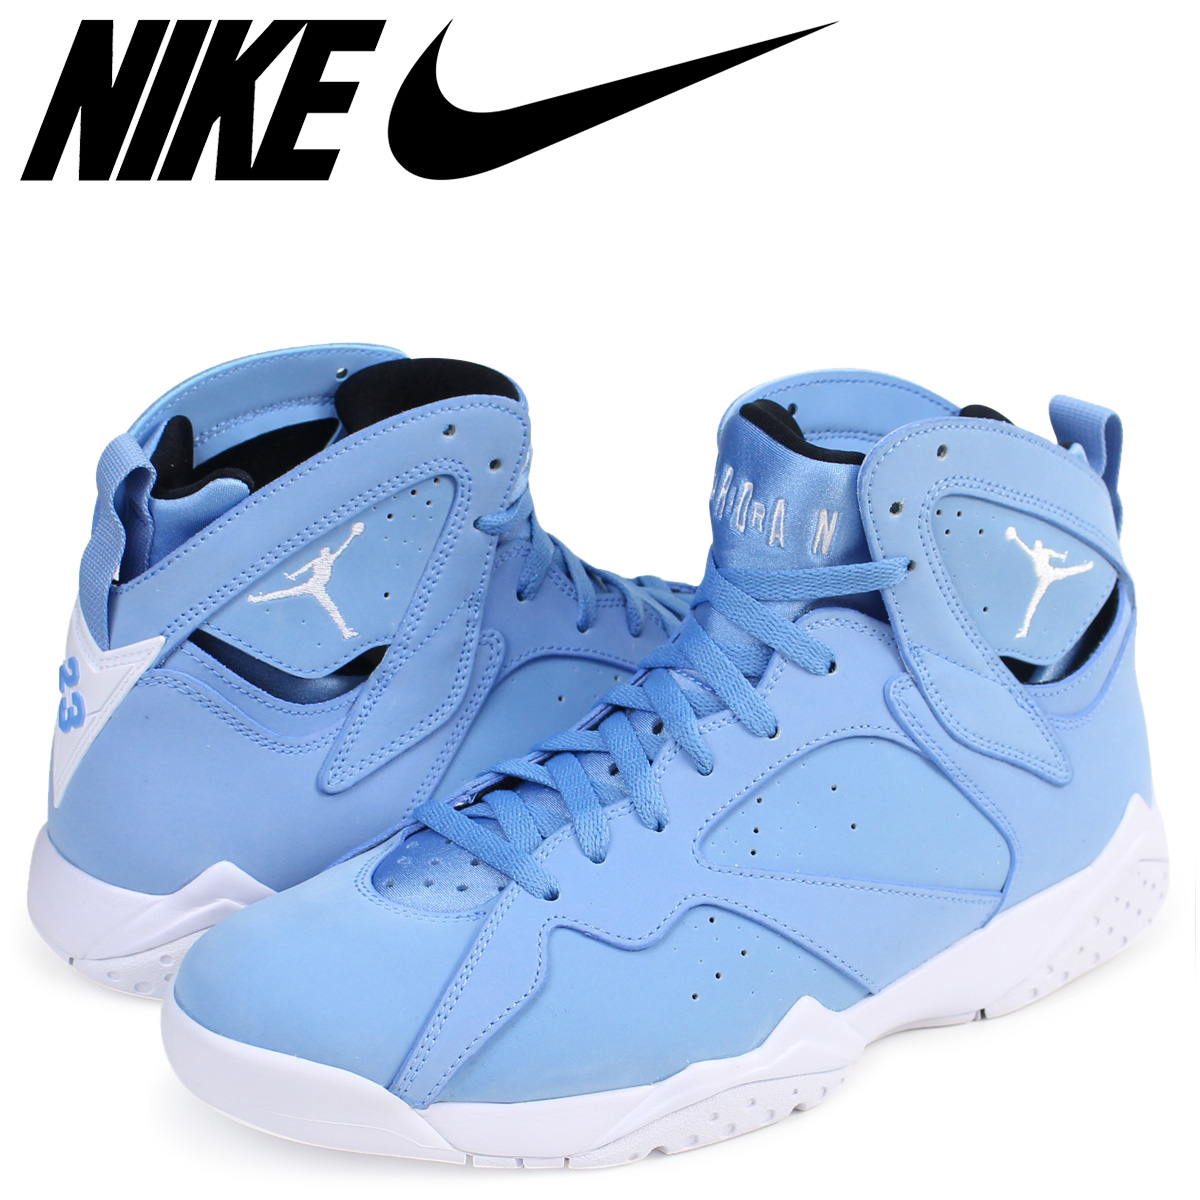 new product 132d4 cb4be NIKE Nike Air Jordan 7 nostalgic sneakers AIR JORDAN 7 RETRO PANTONE  304,775-400 men's shoes blue